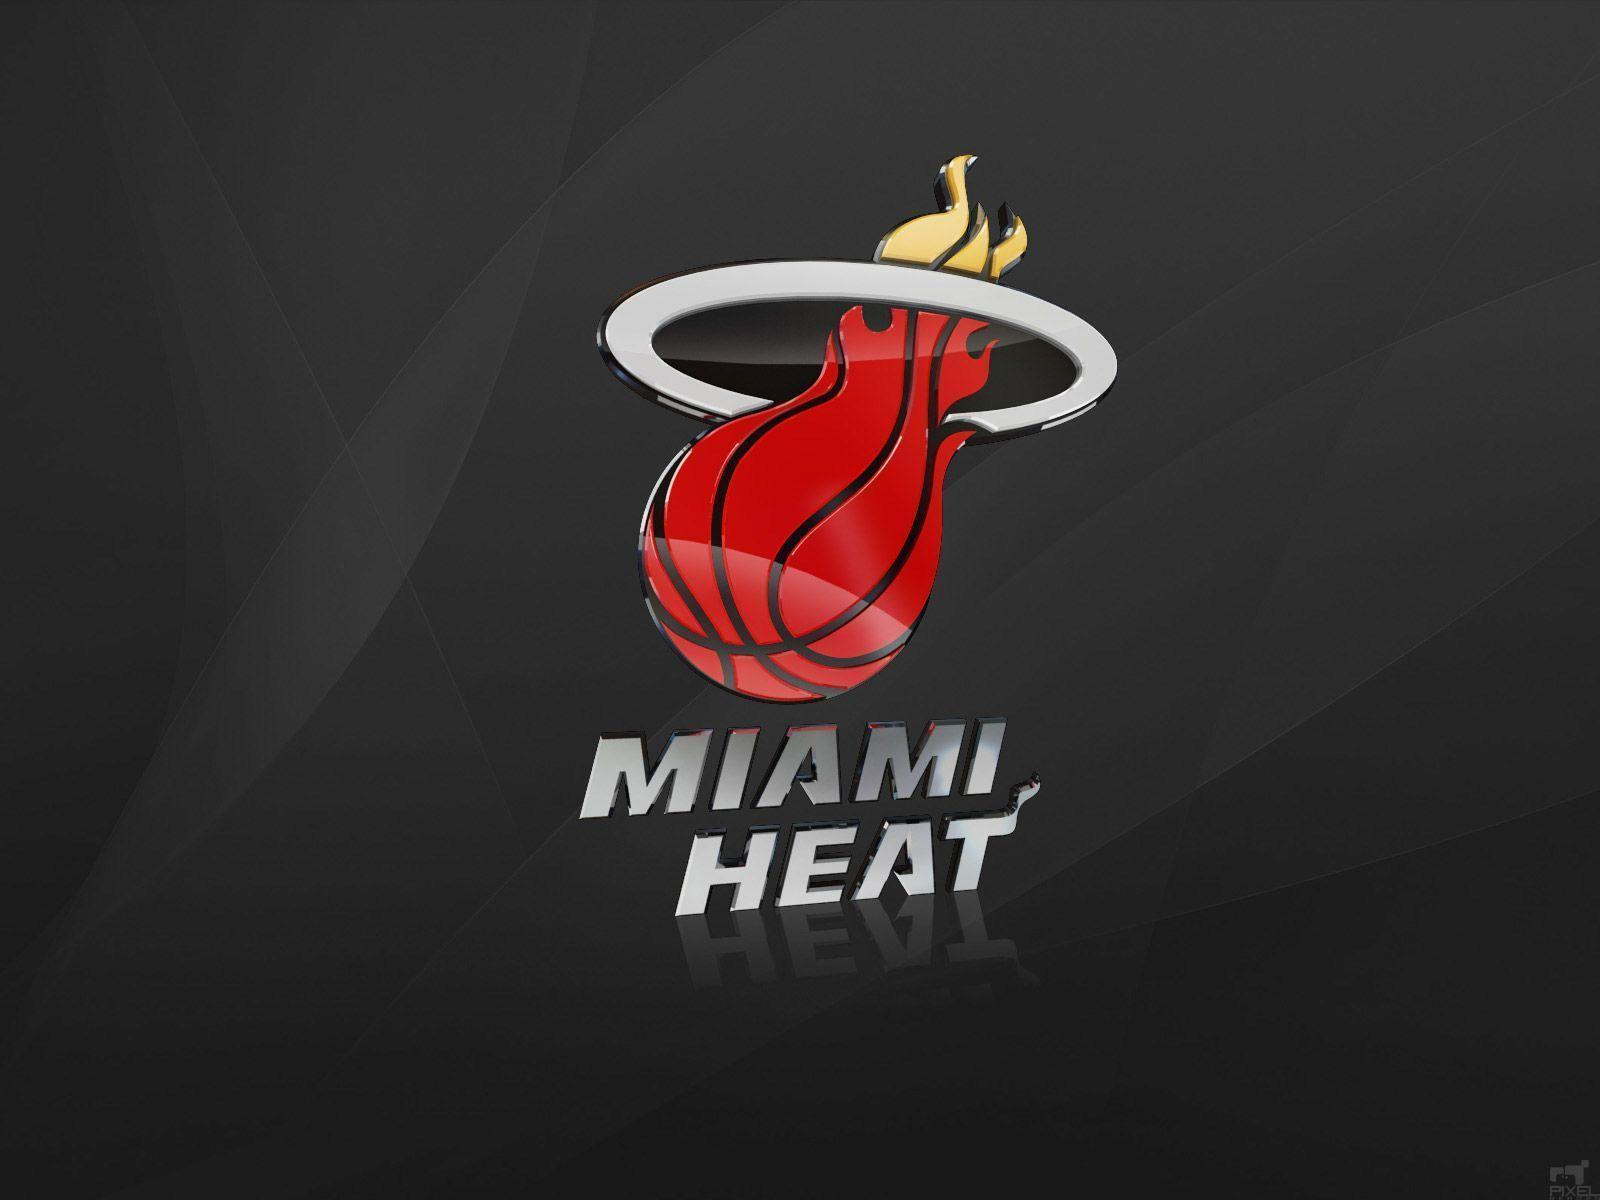 Miami heat logo wallpapers 2015 wallpaper cave - Miami heat wallpaper android download ...